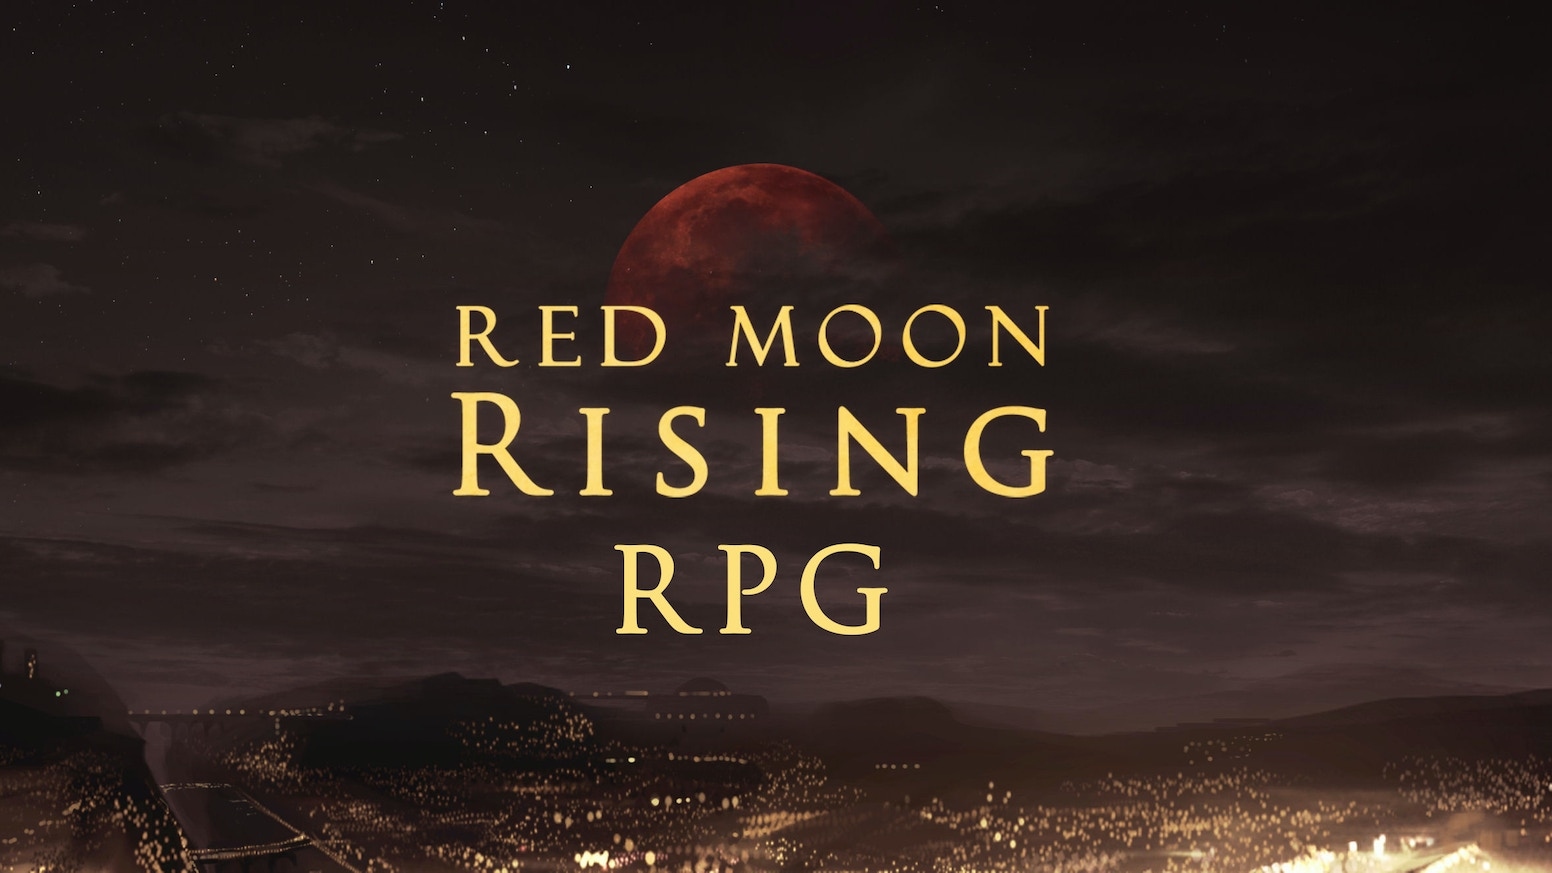 red moon rising steam - photo #11